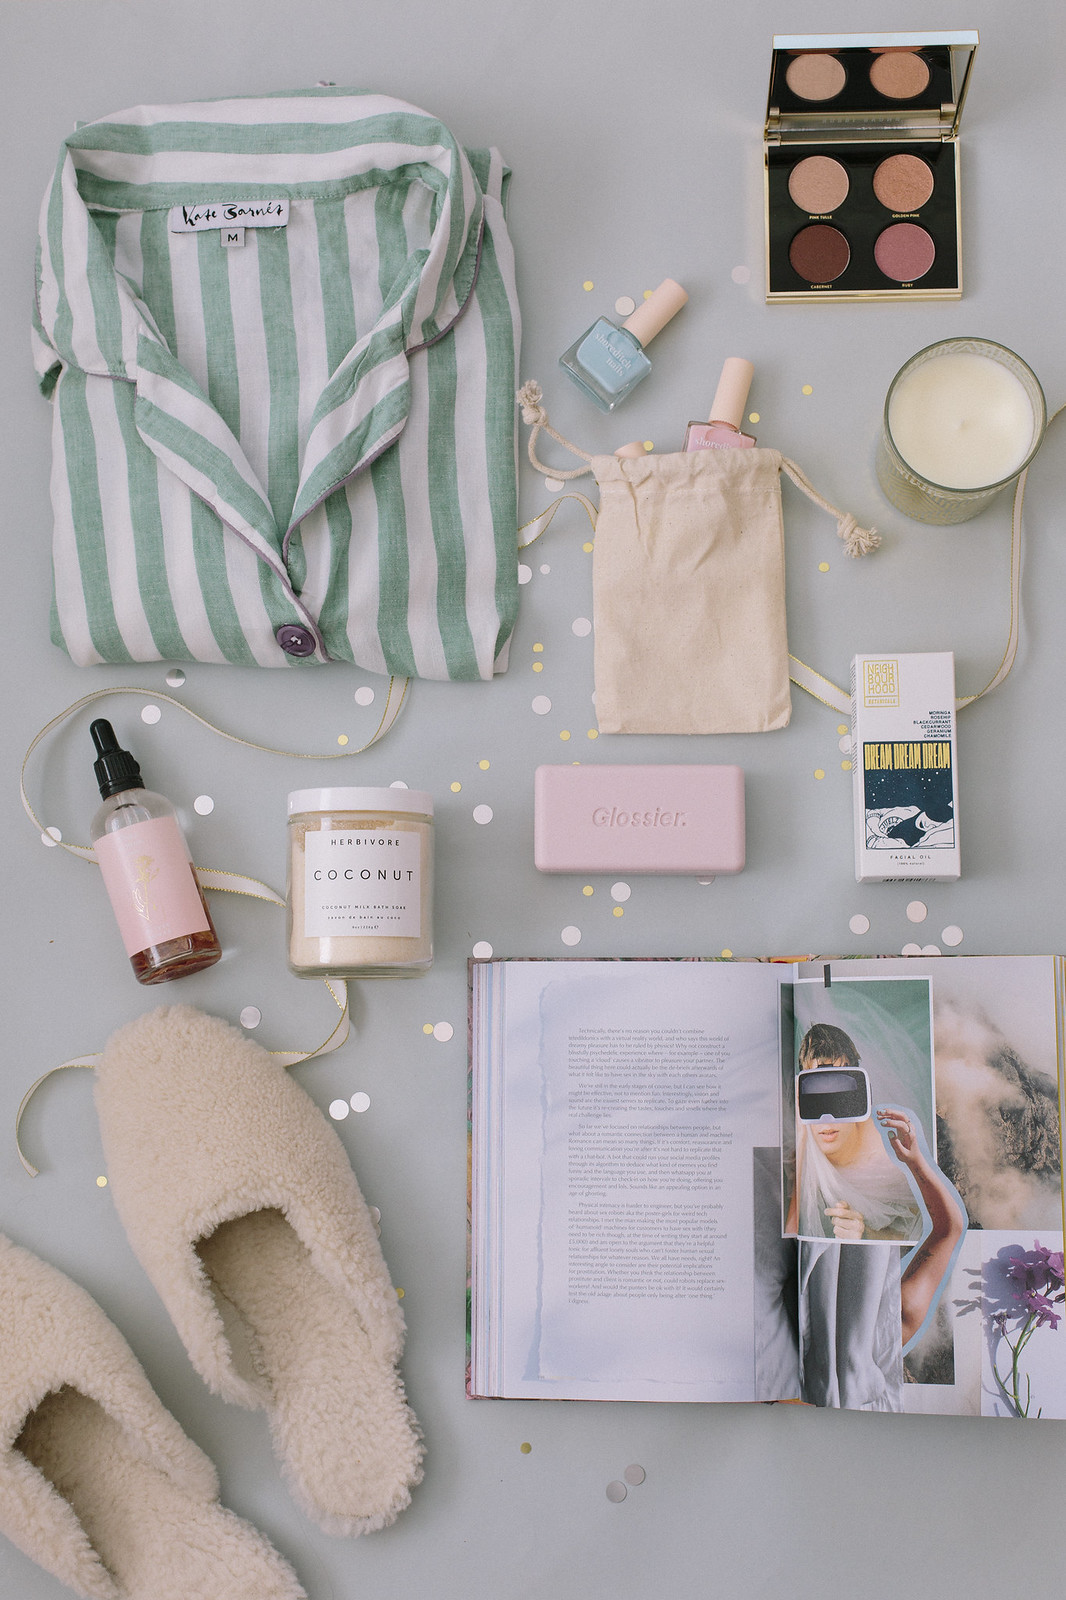 Giftmas Gift Guides 2020: Day 4, For The Pal In Need Of A Pamper…